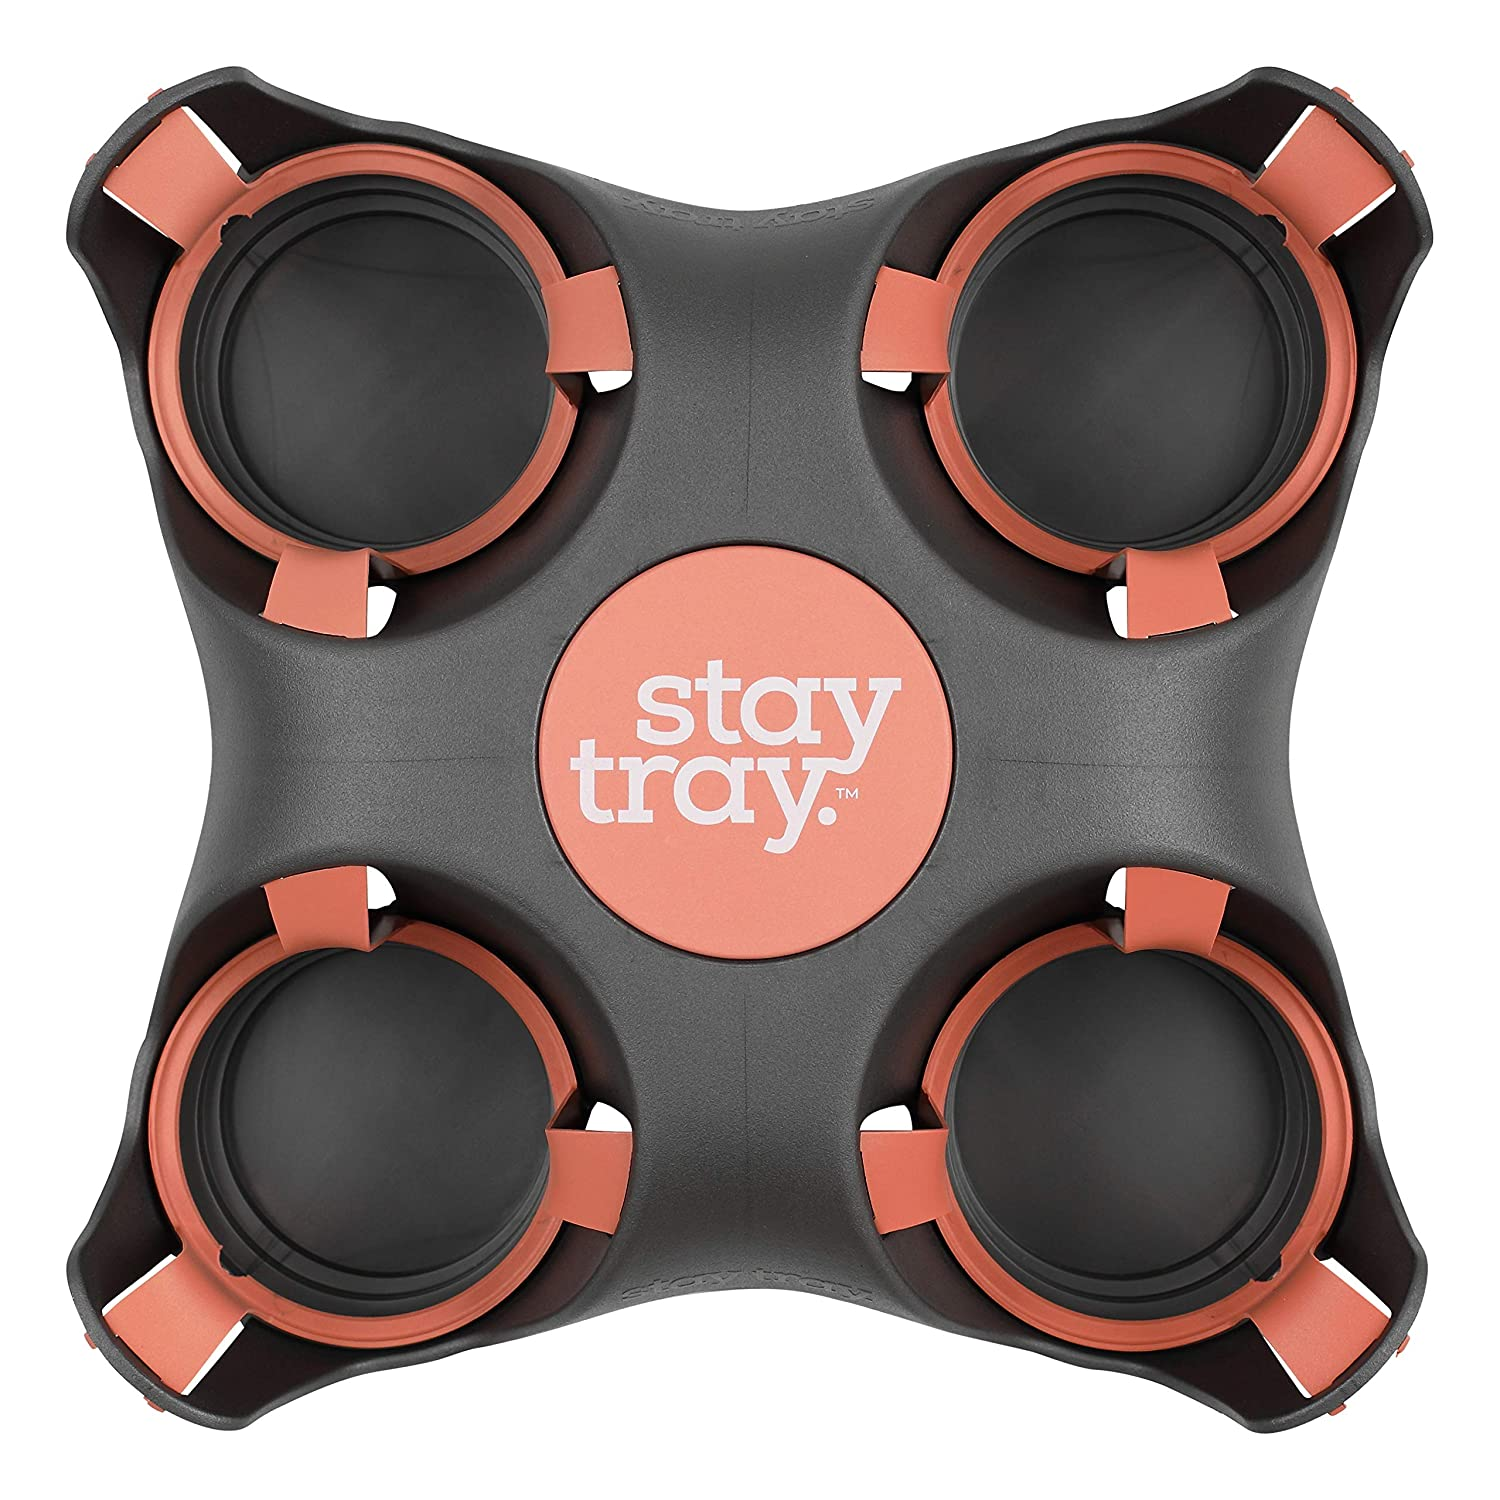 Reusable Drink Carrier by Stay Tray. Drink Holder Made from 100% Recycled Plastic. Portable & Very Sturdy Cup Carrier I Drink Caddy I Drink Tray I Coffee Cup Holder. Great Drink Carrier for Delivery.